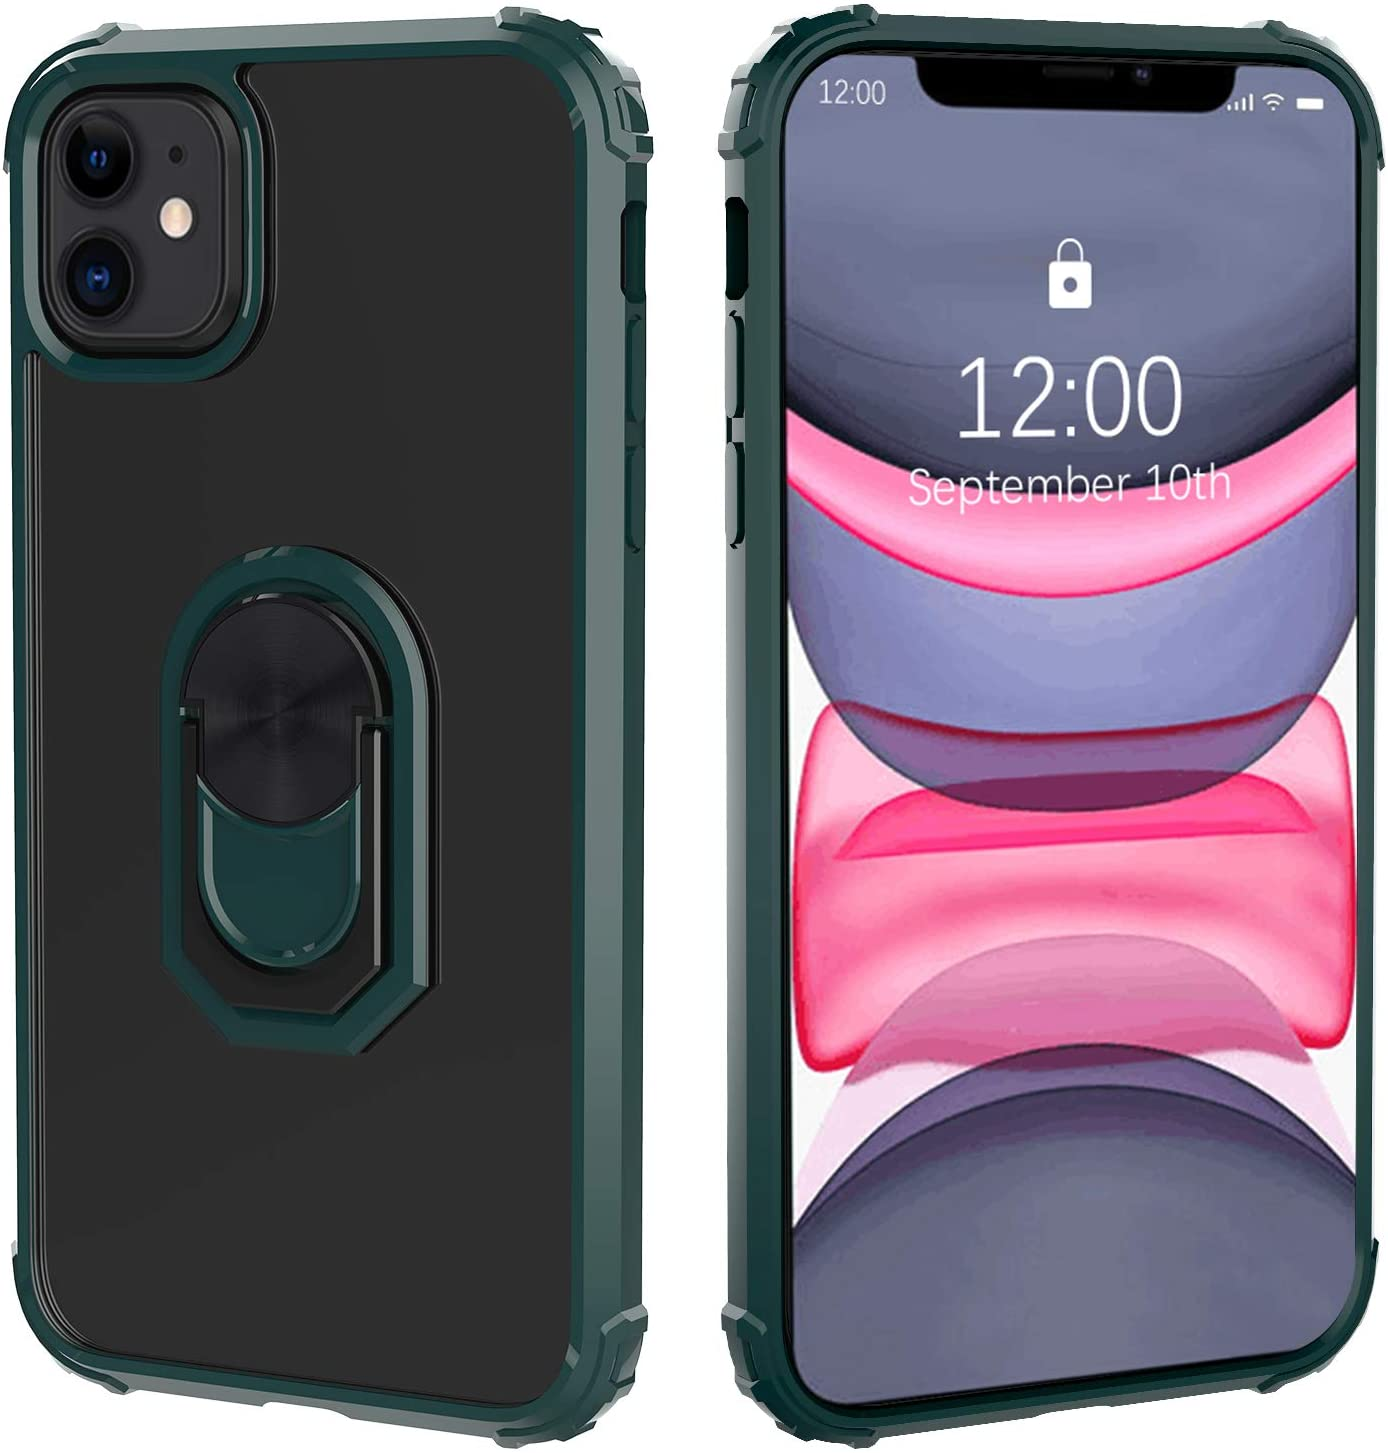 Restoo Designed for iPhone 11 Case,Protective Drop Test Bumper Case [Kickstand] [Clear] Compatible with iPhone 11 6.1 inch (Green)